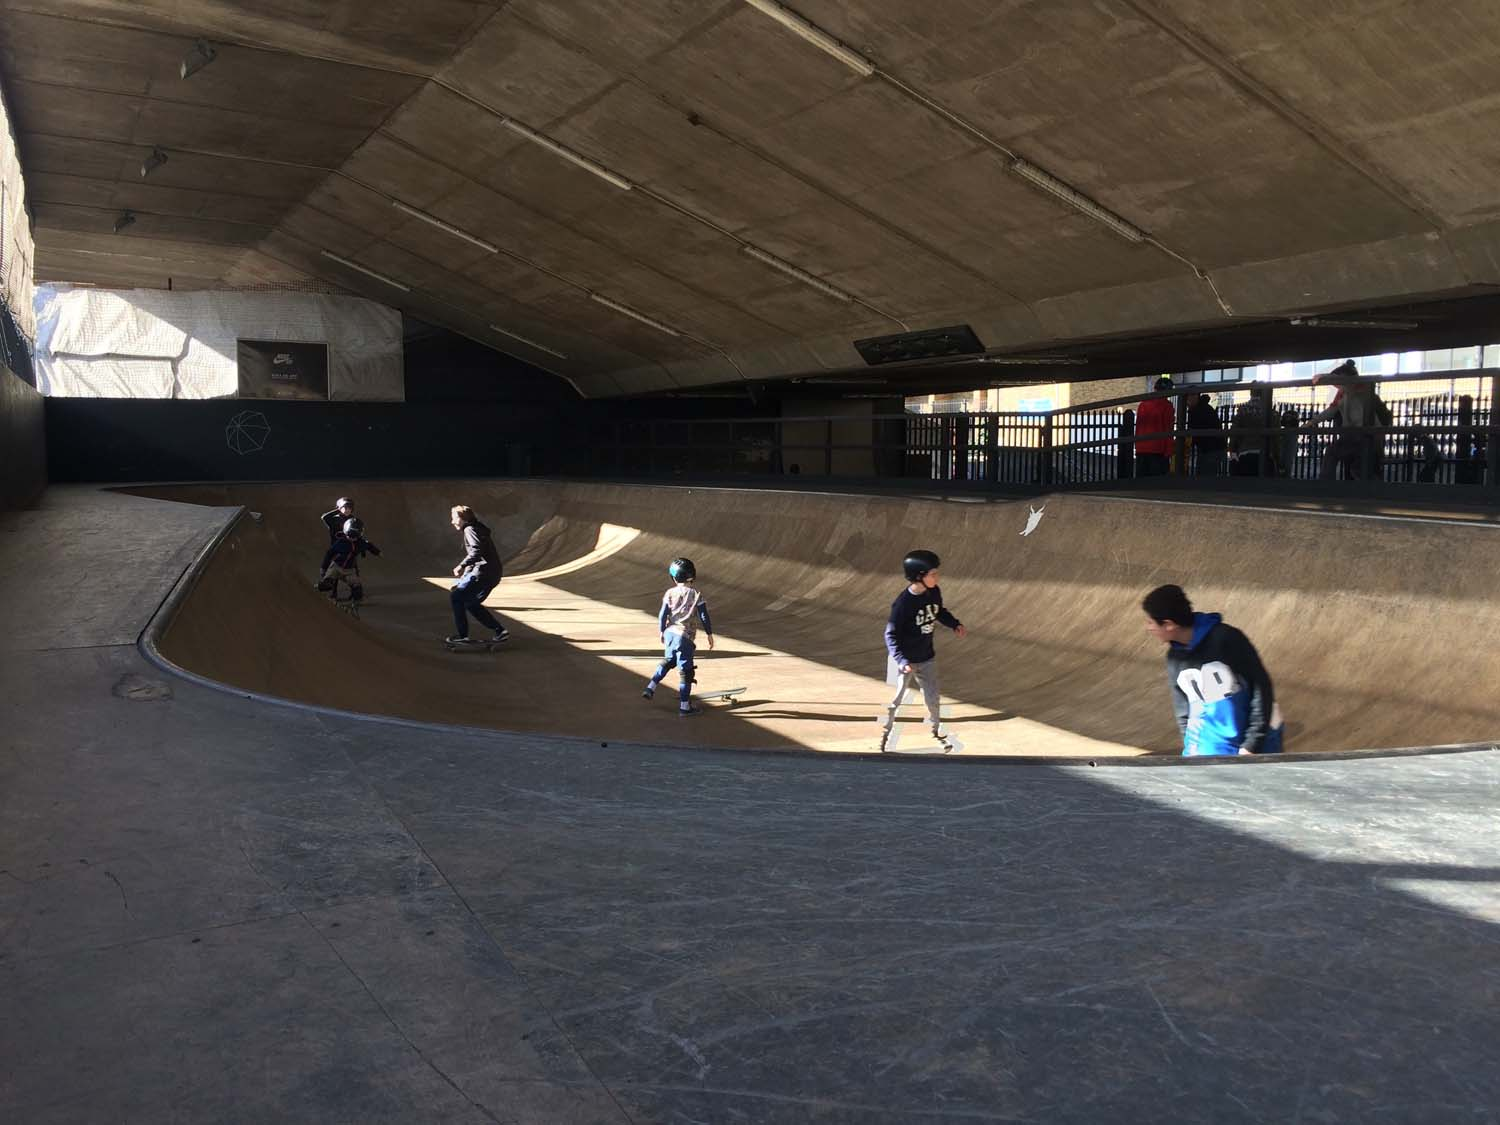 BAYSIXTY6-Skate-Park-Skate-Academy-Group-lesson-in-the-bowl-Otis-teaches-Bowl-Riding.jpg